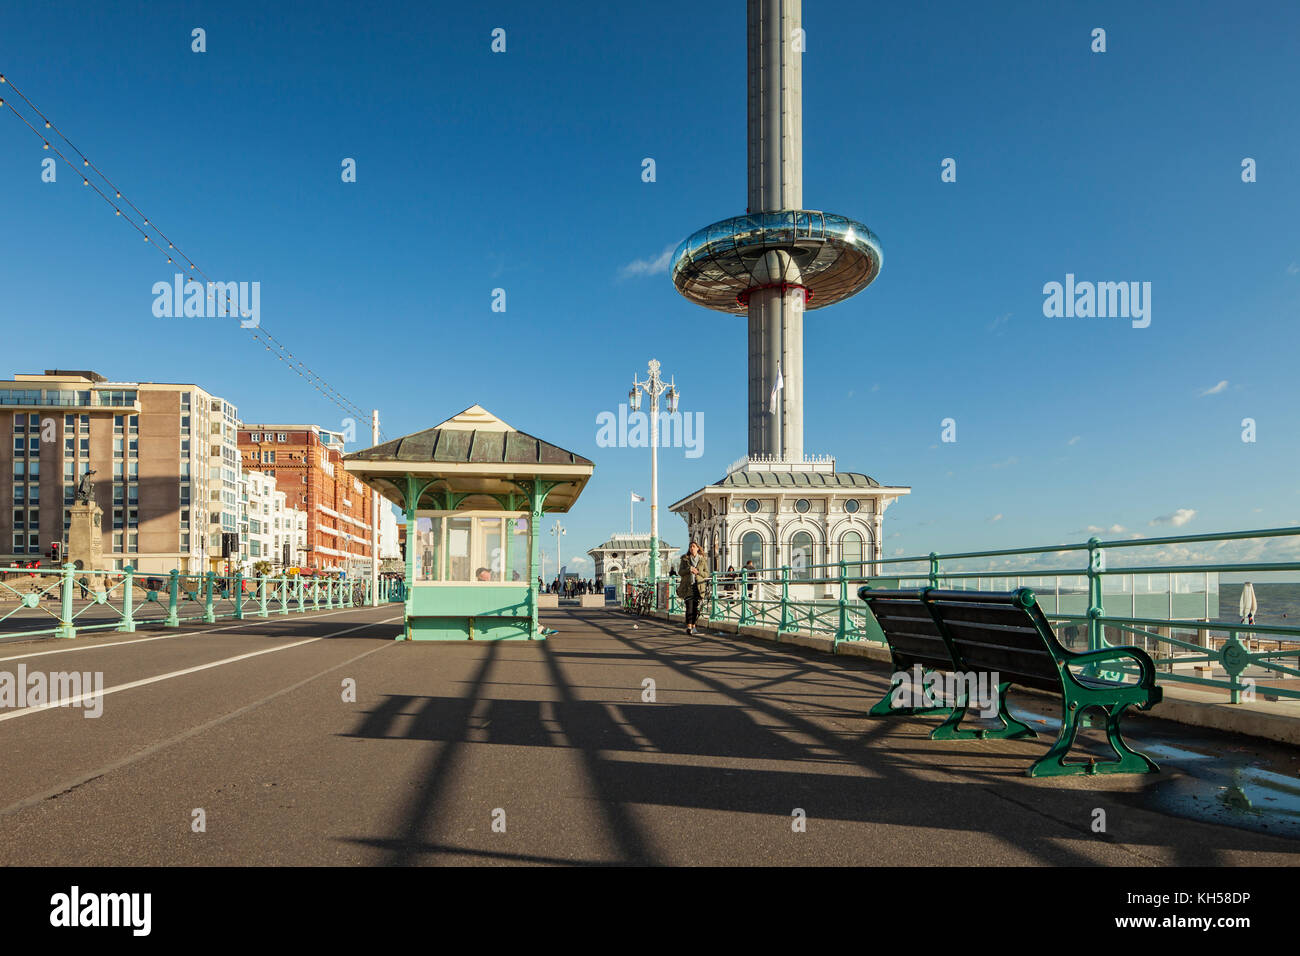 Afternoon on Brighton seafront, East Sussex, England. i360 tower in the distance. - Stock Image